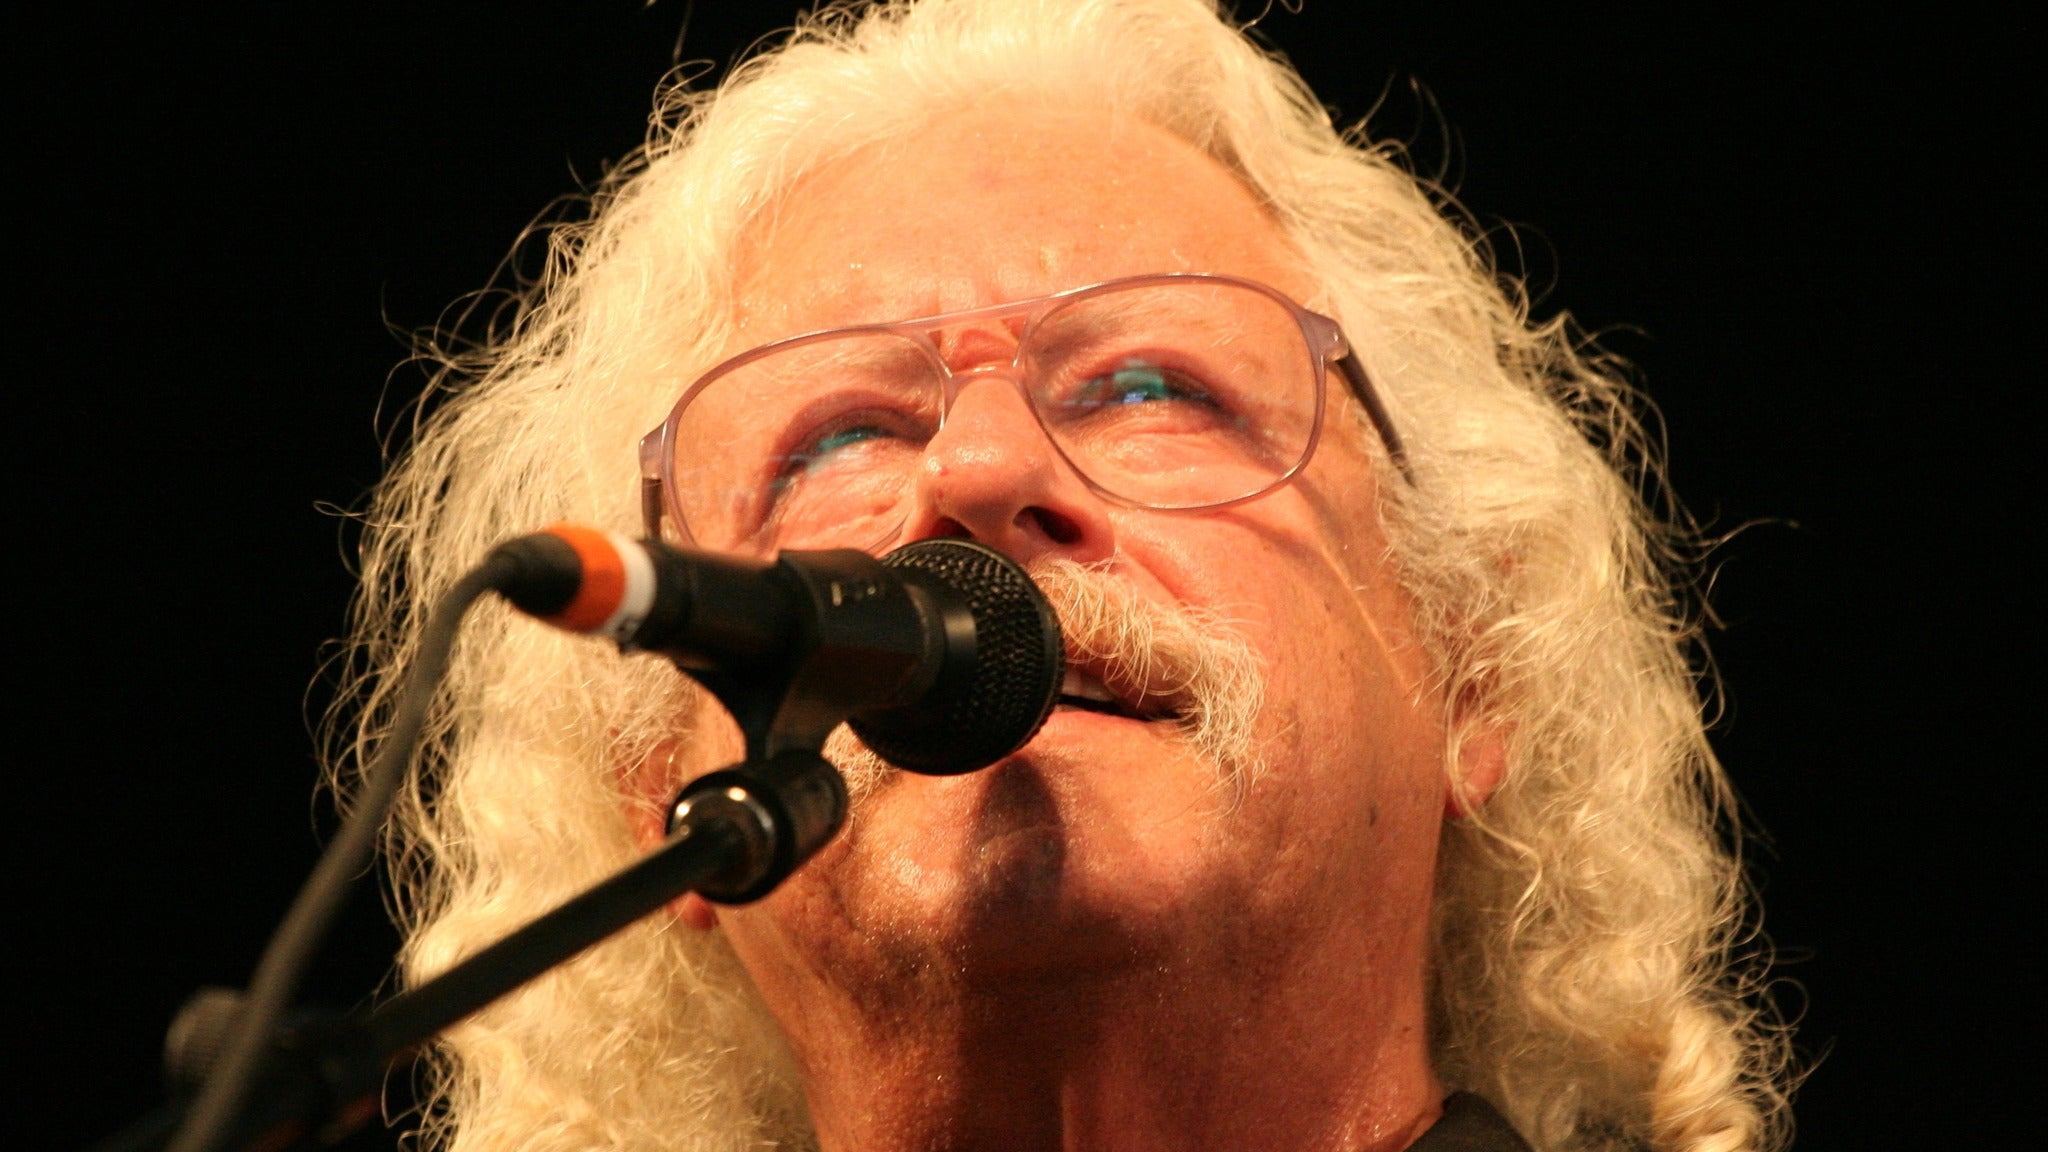 Arlo Guthrie at U.S. Cellular Center Asheville